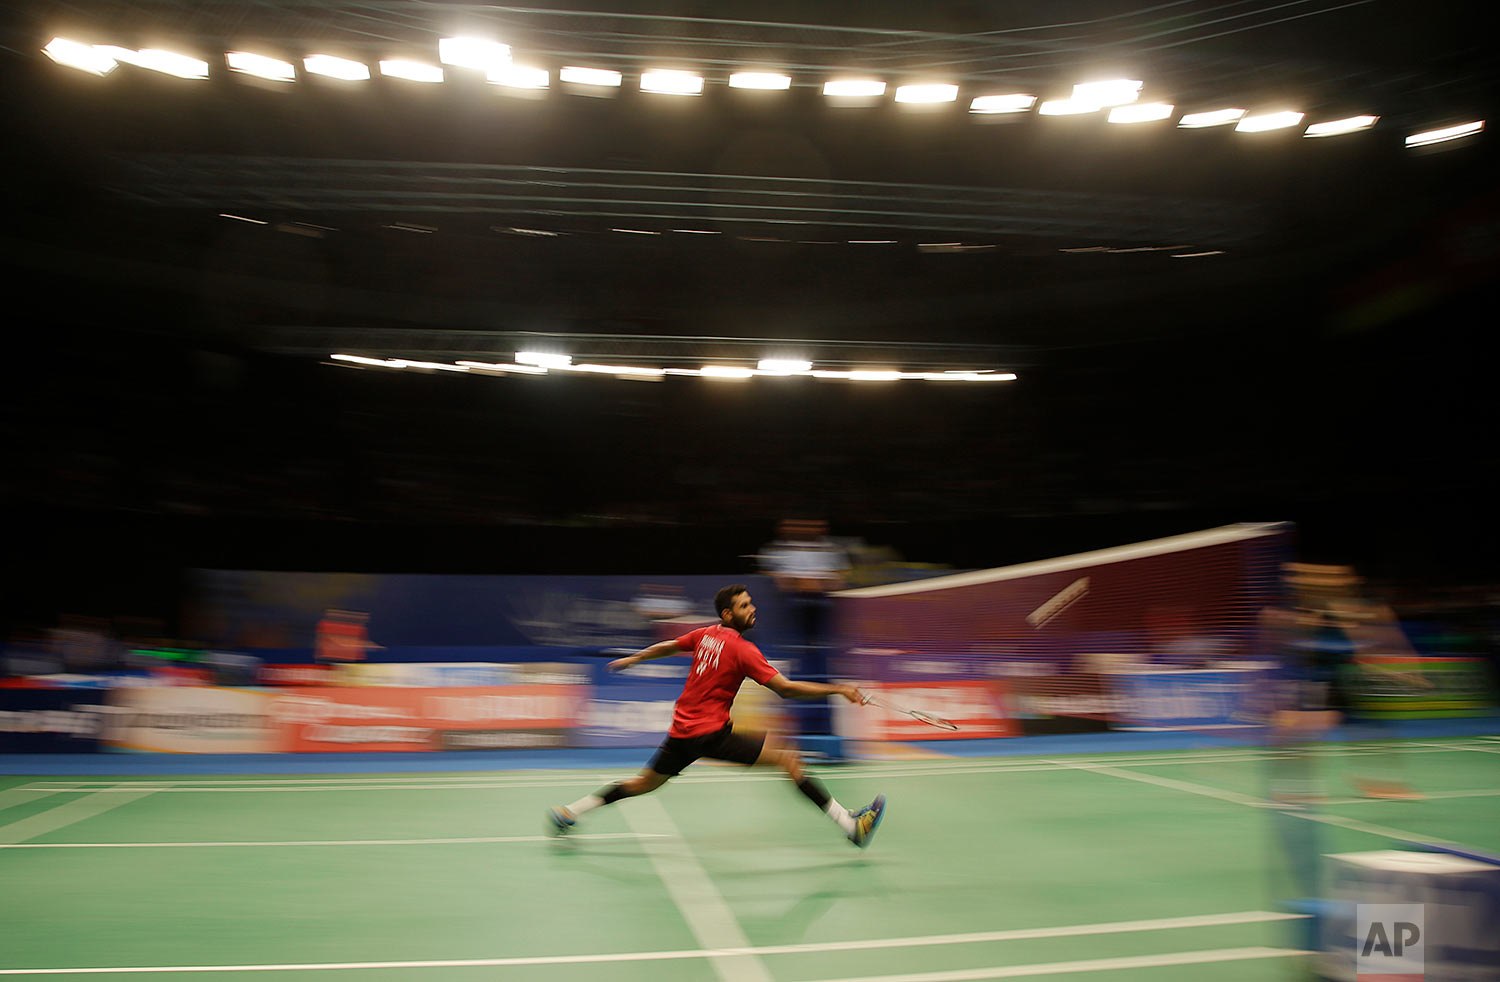 In this Thursday, June 15, 2017, photo, India's HS Prannoy plays against Malaysia's Lee Chong Wei during the second round of Indonesia Open badminton championship in Jakarta, Indonesia. (AP Photo/Dita Alangkara)